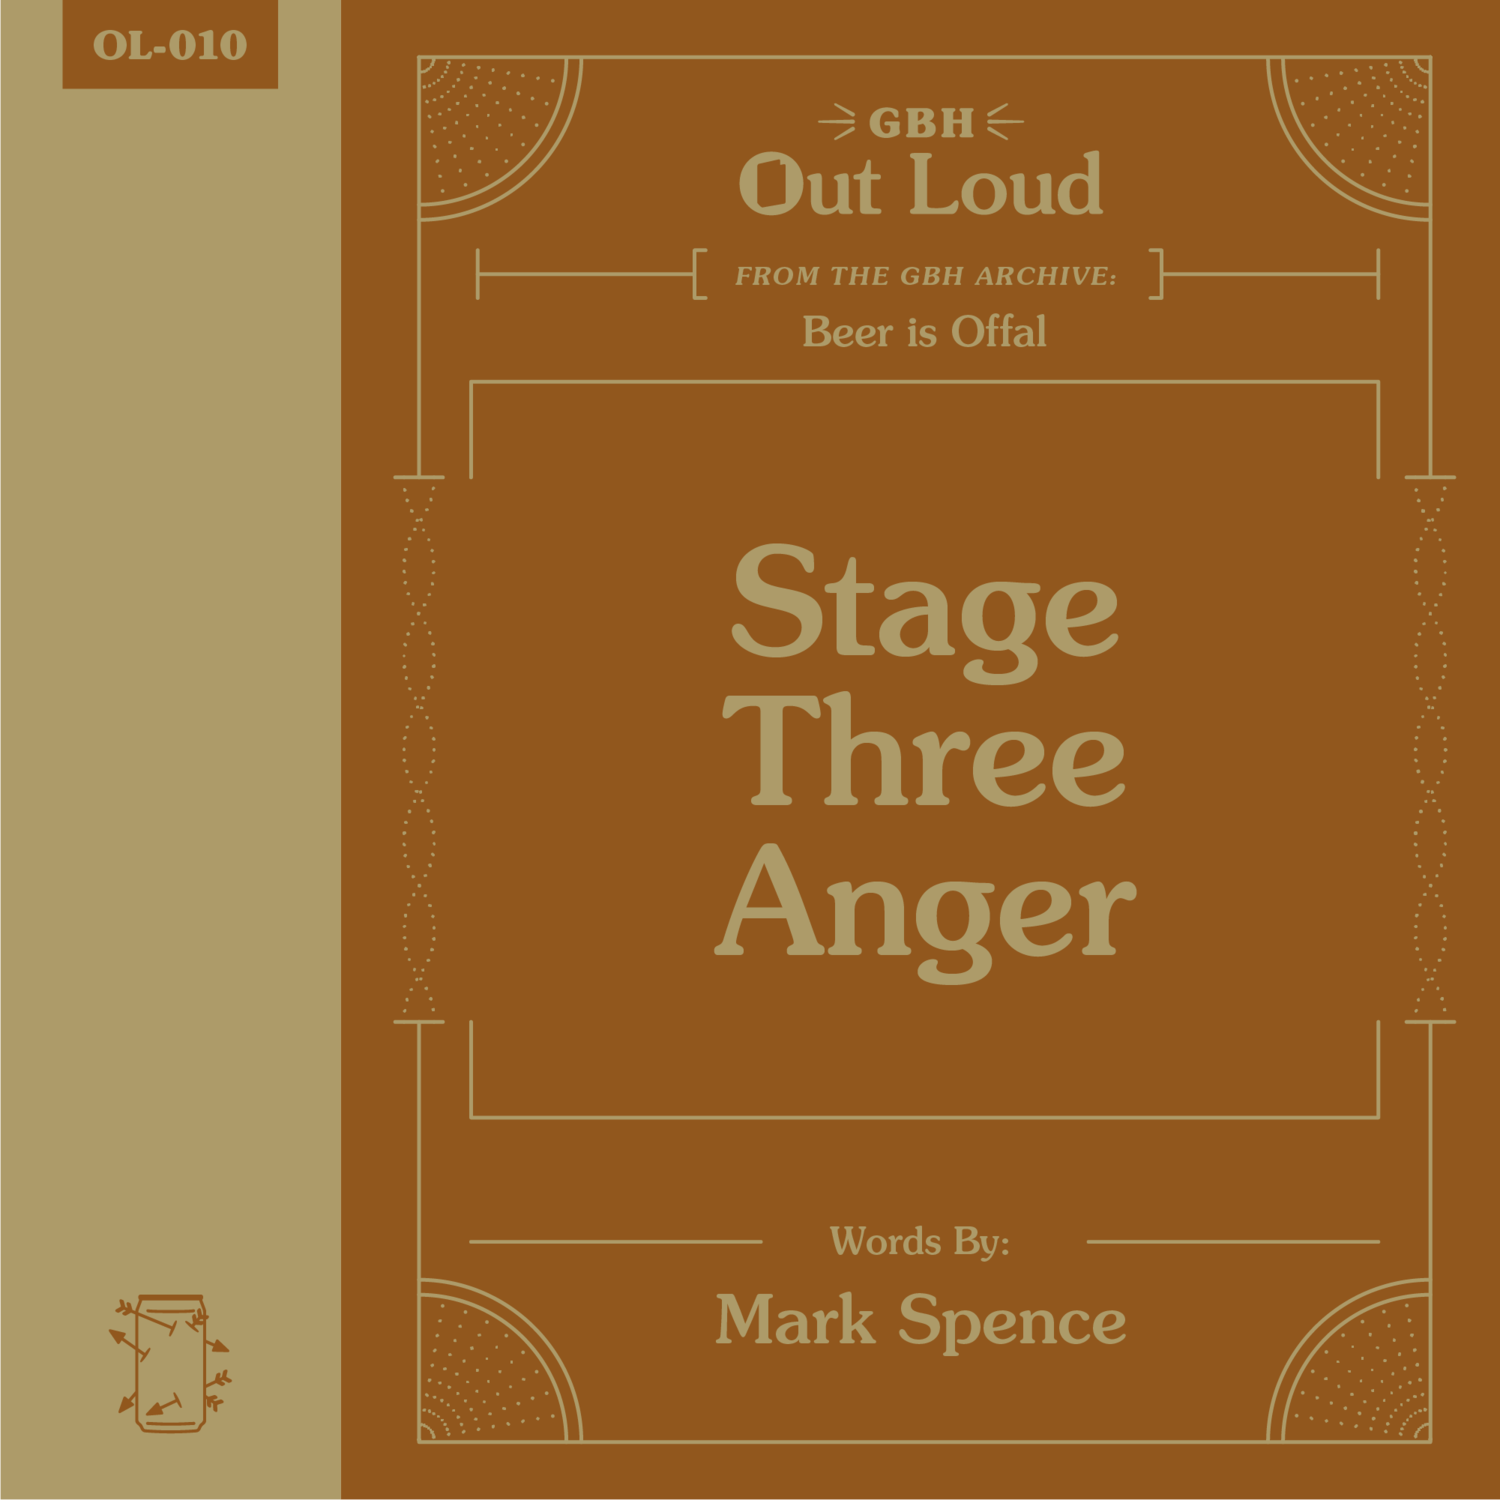 """OL-010 Mark Spence Reads """"Stage Three Anger"""" from Beer is Offal"""